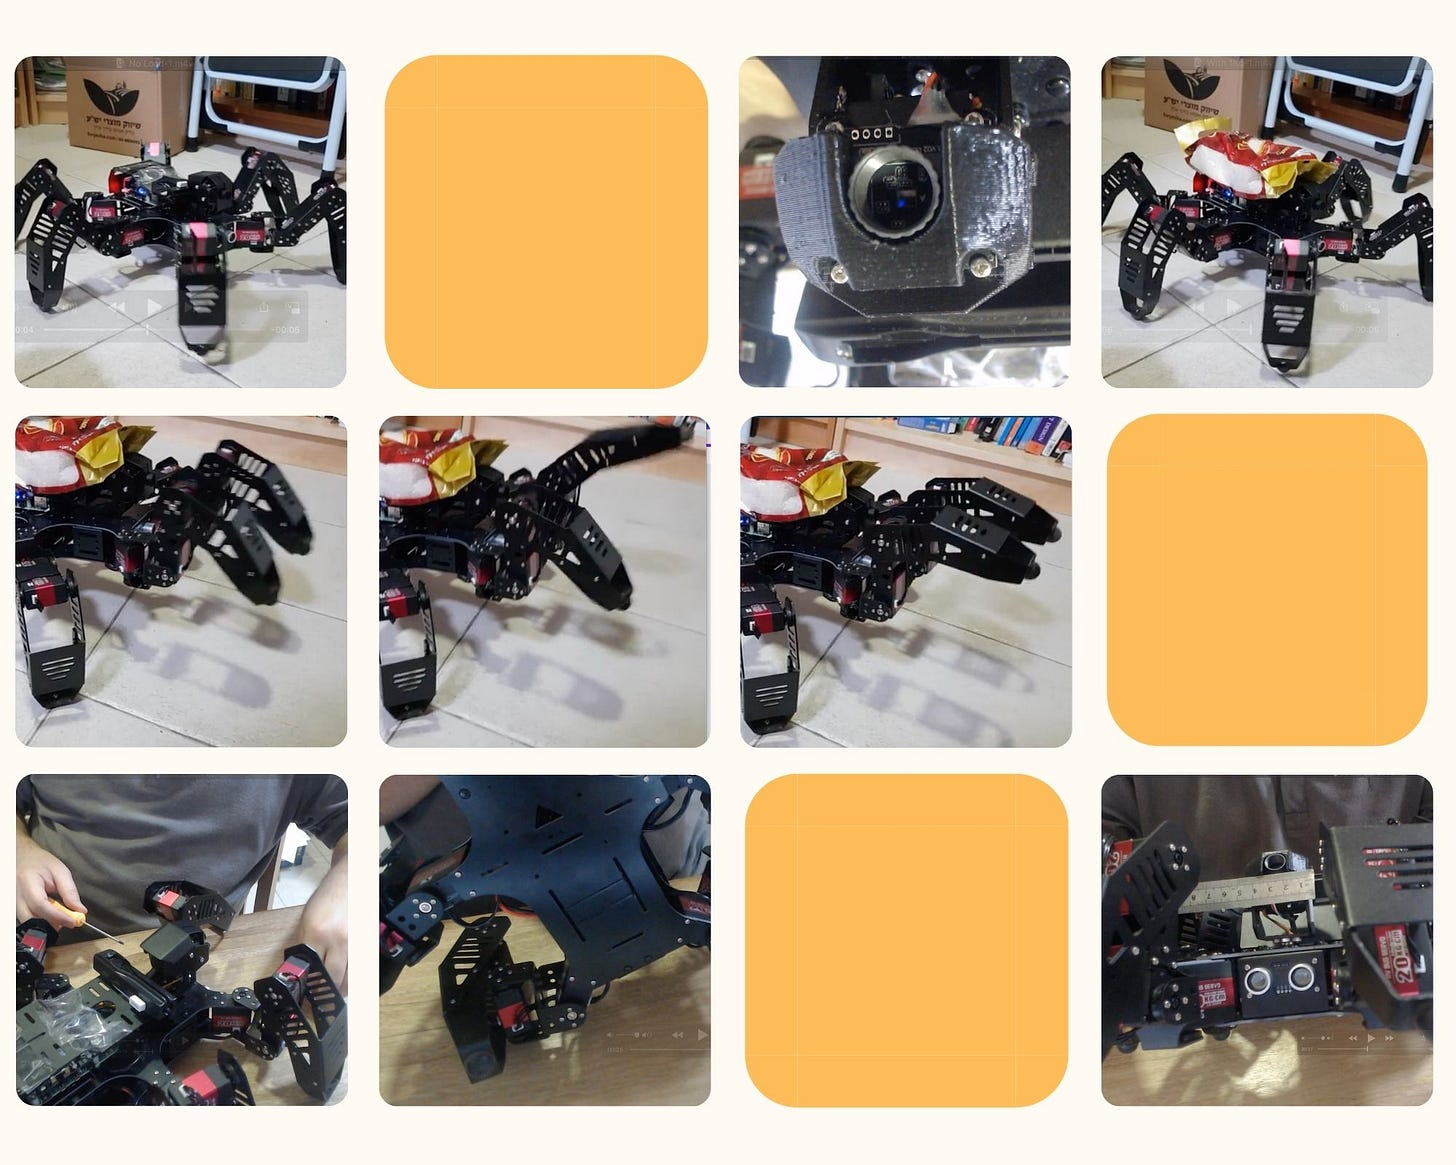 Yak Rover example images